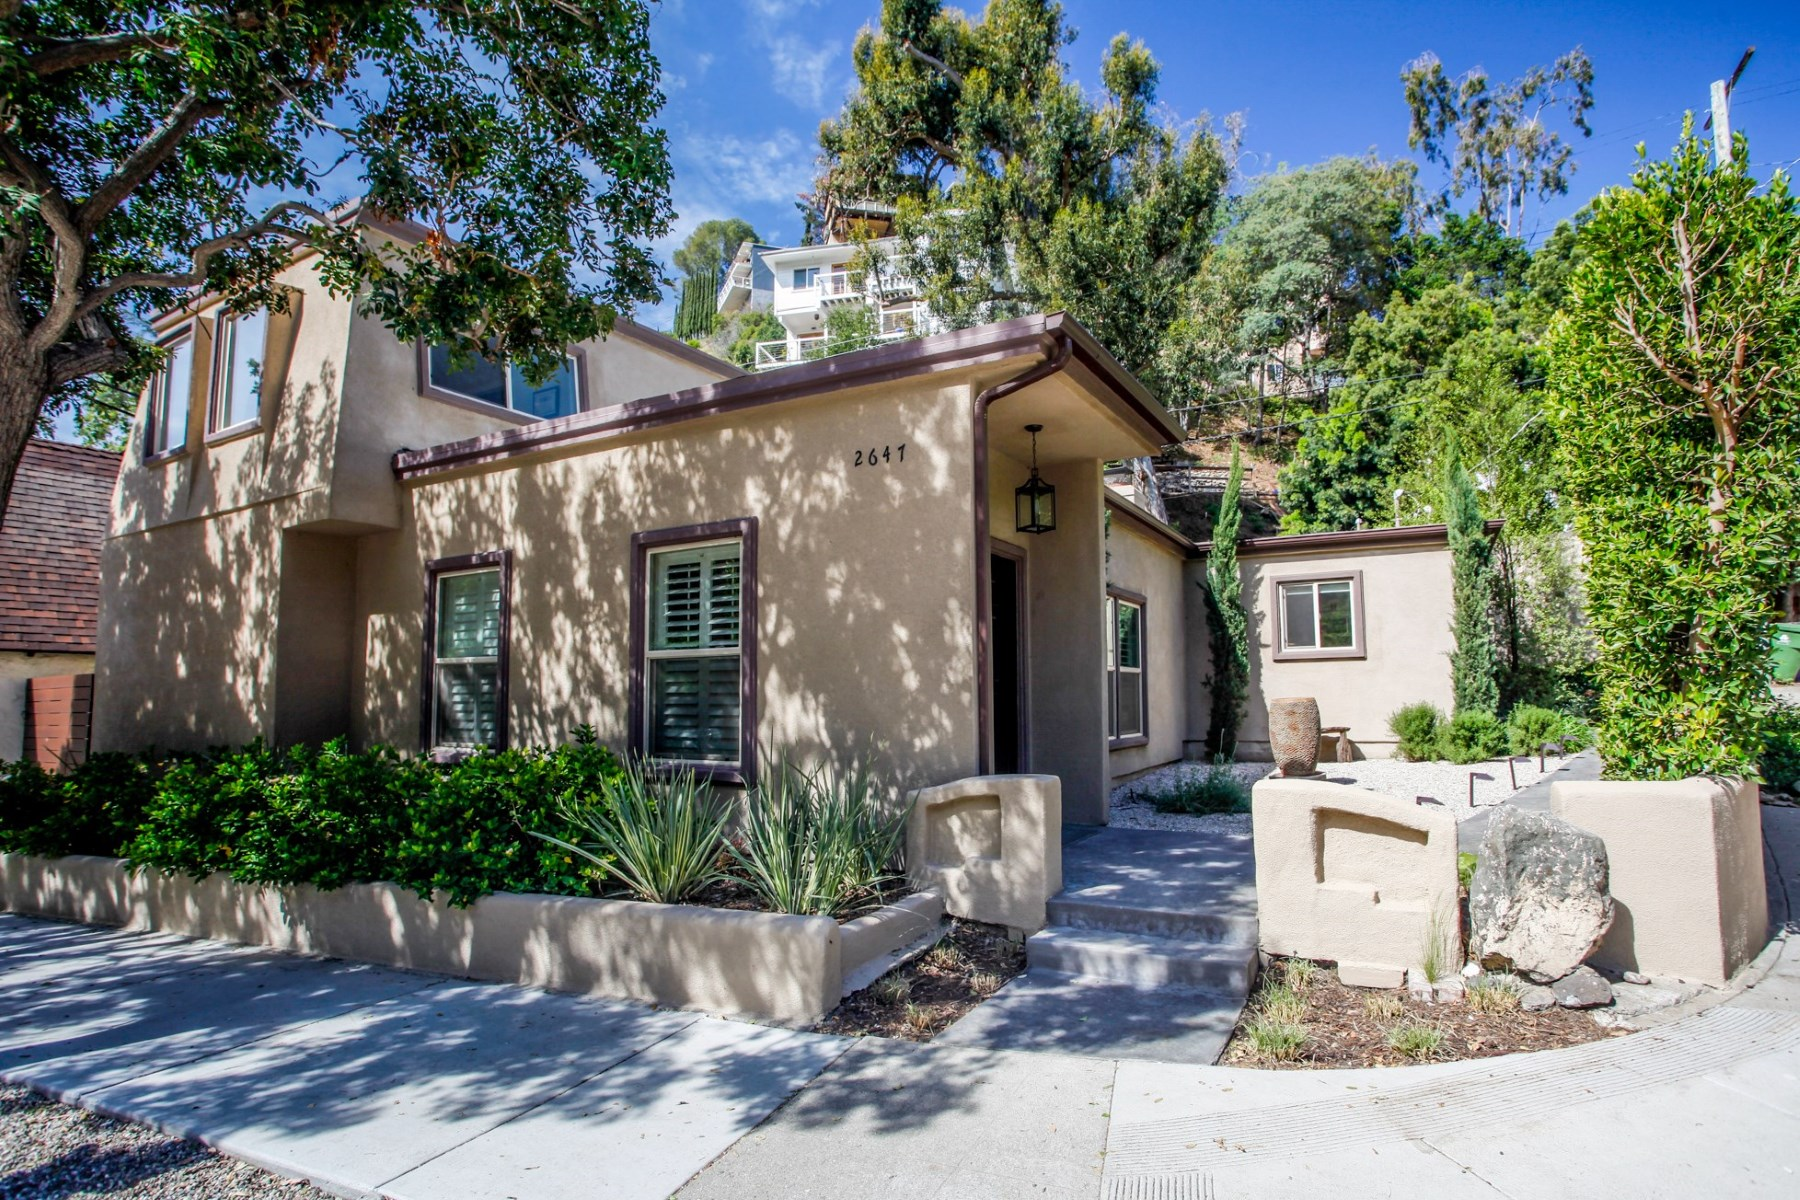 Single Family Home for Sale at Updated Bronson Canyon Park 2647 Canyon Drive Los Feliz, Los Angeles, California, 90068 United States